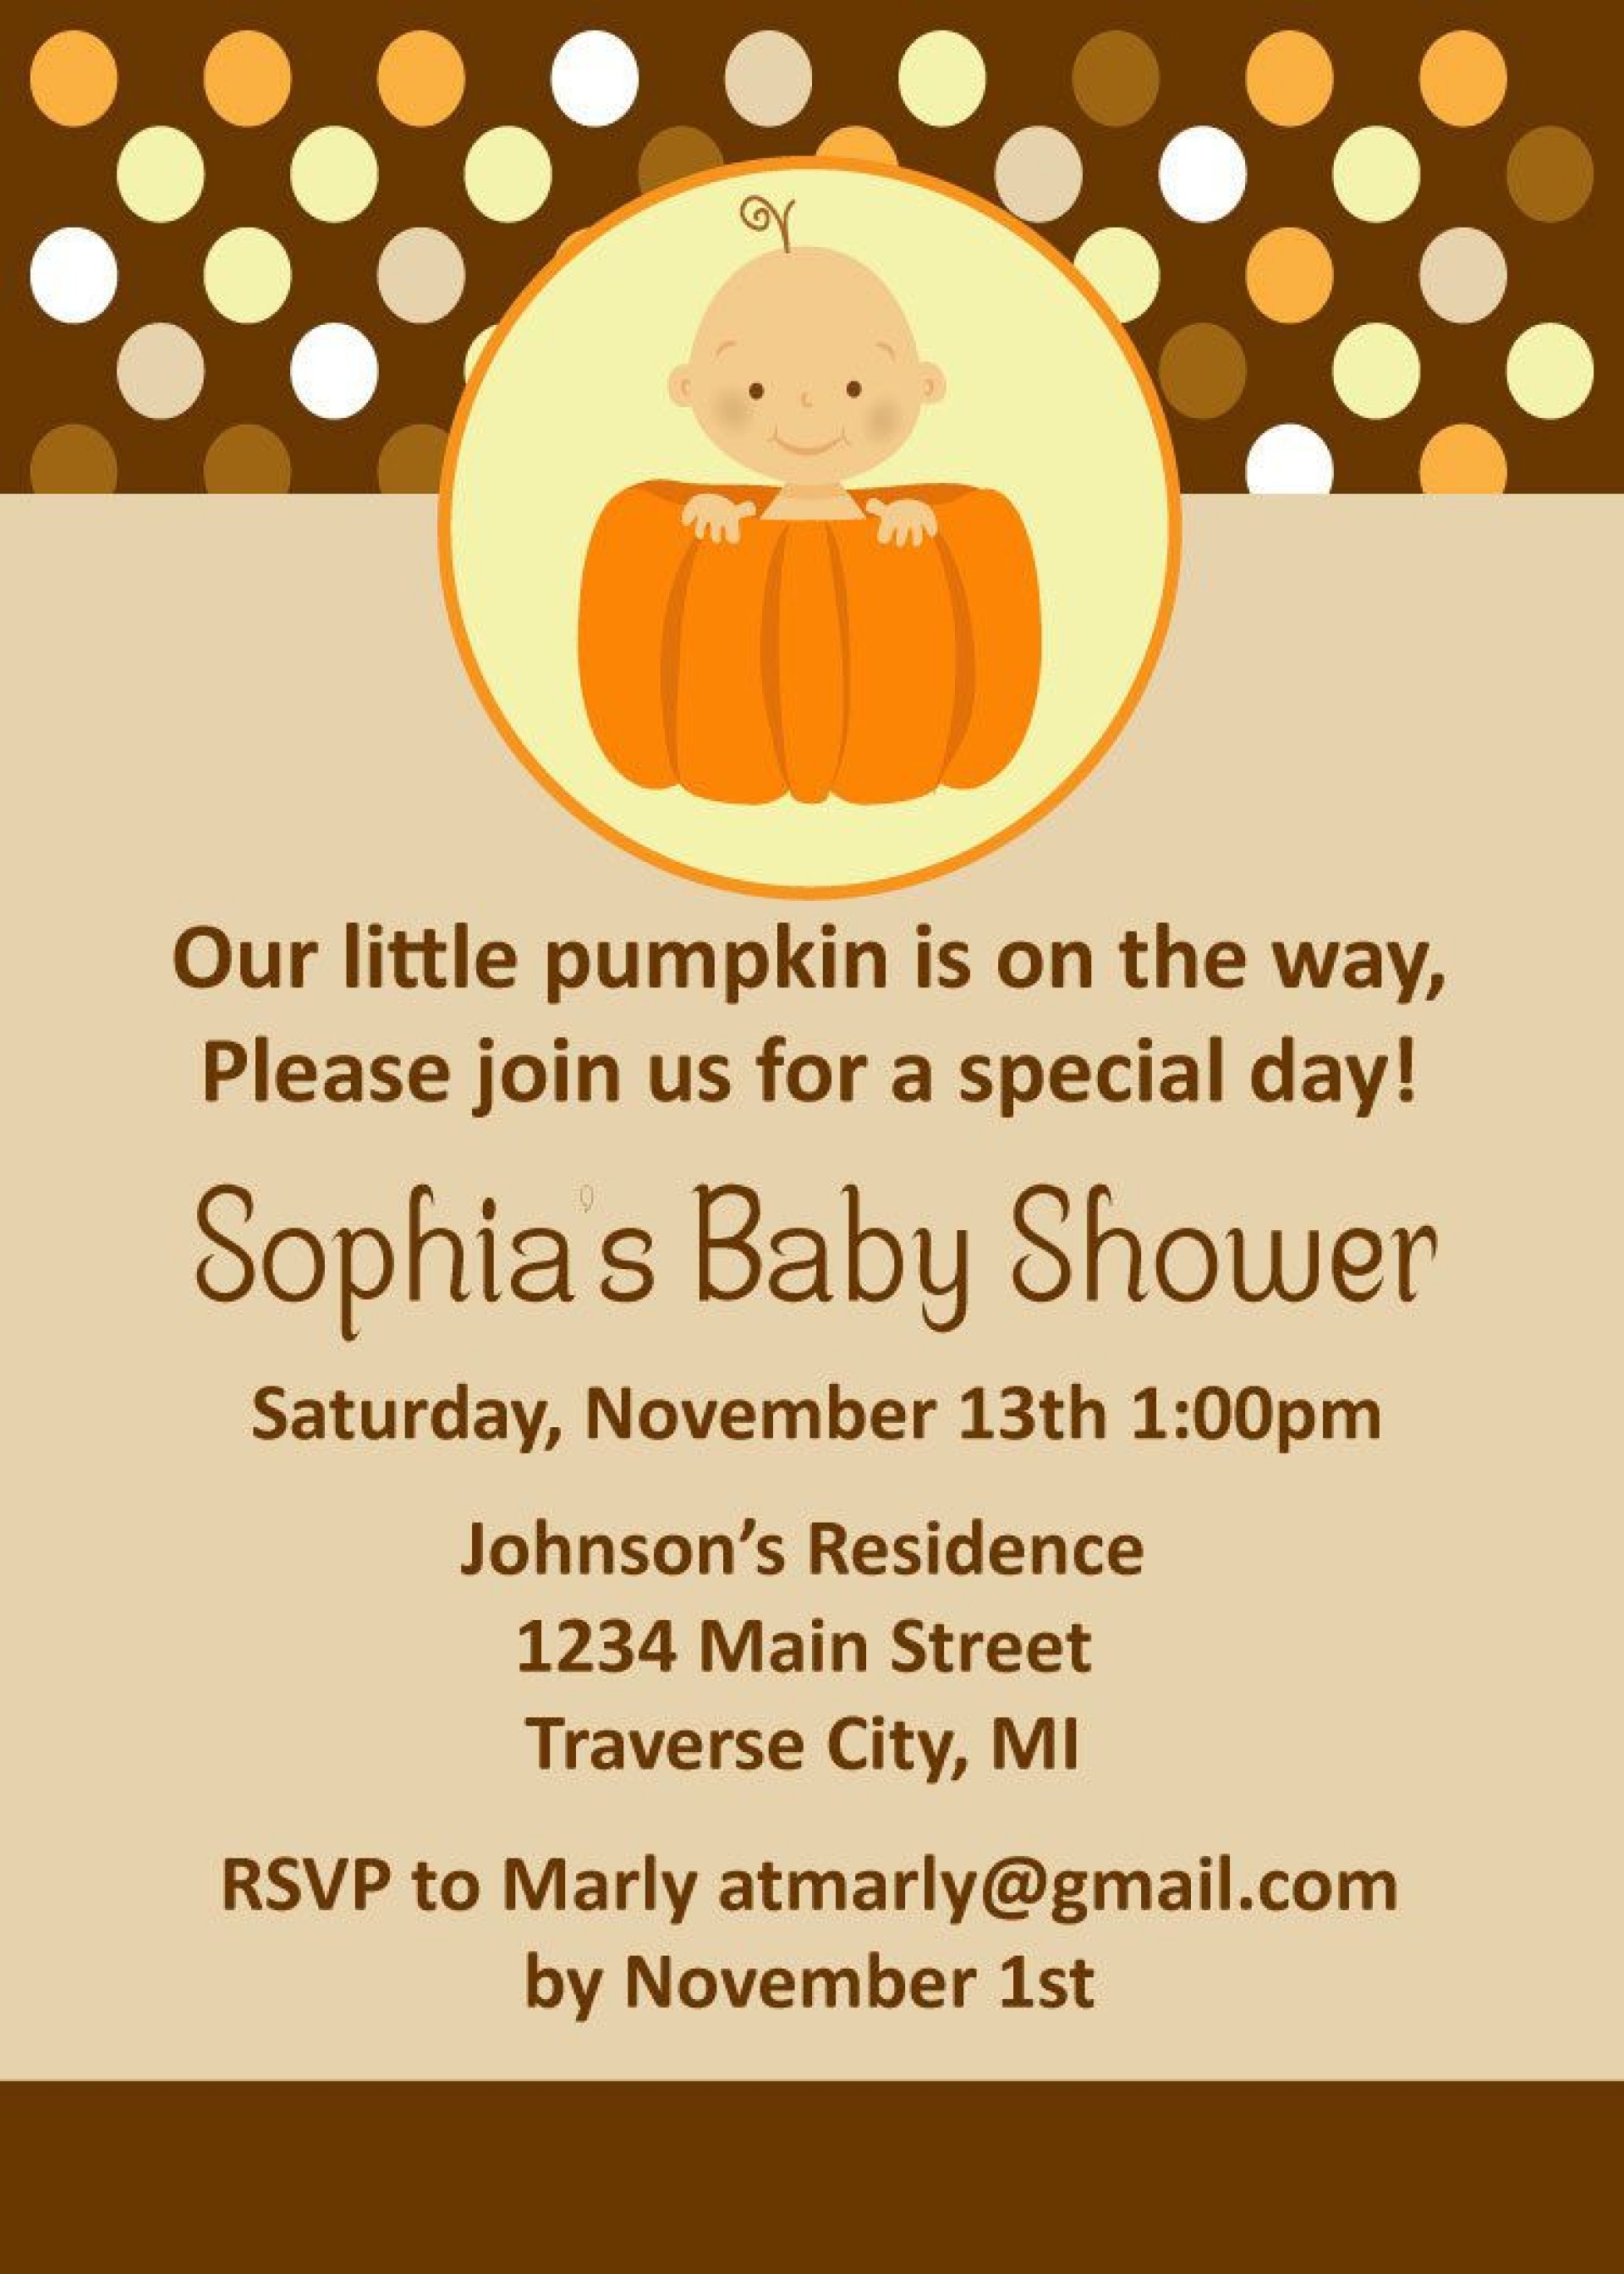 008 Striking Baby Shower Invitation Girl Pumpkin Image  Pink Little1920